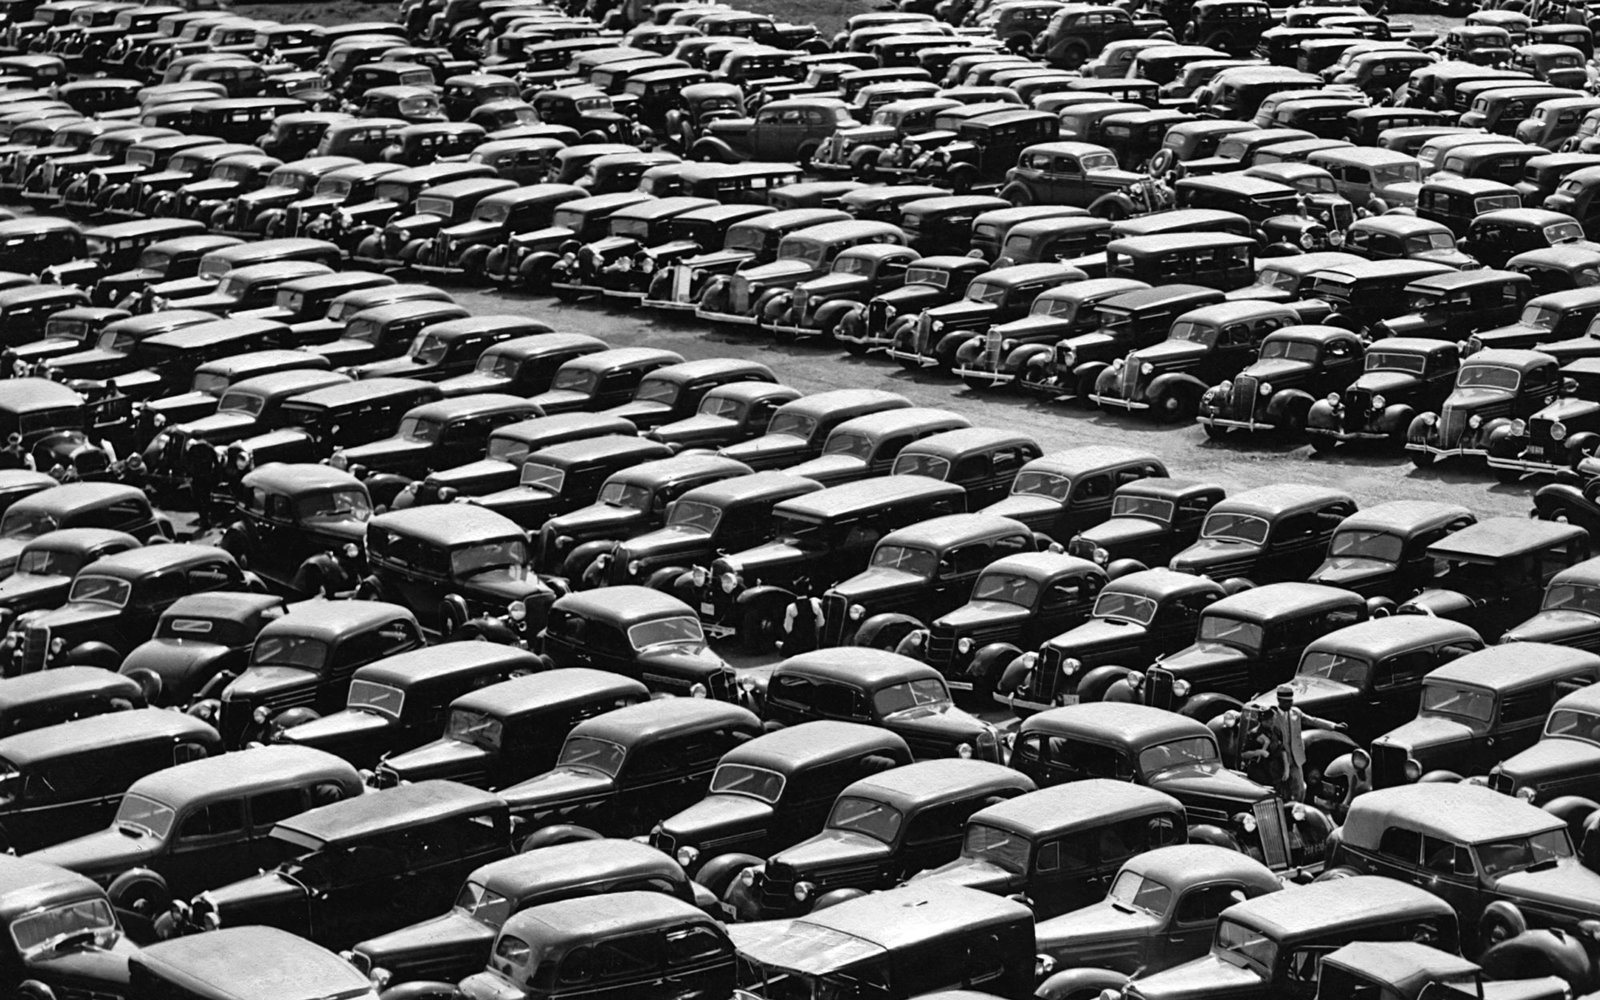 Kentucky Derby Car Lot 1940